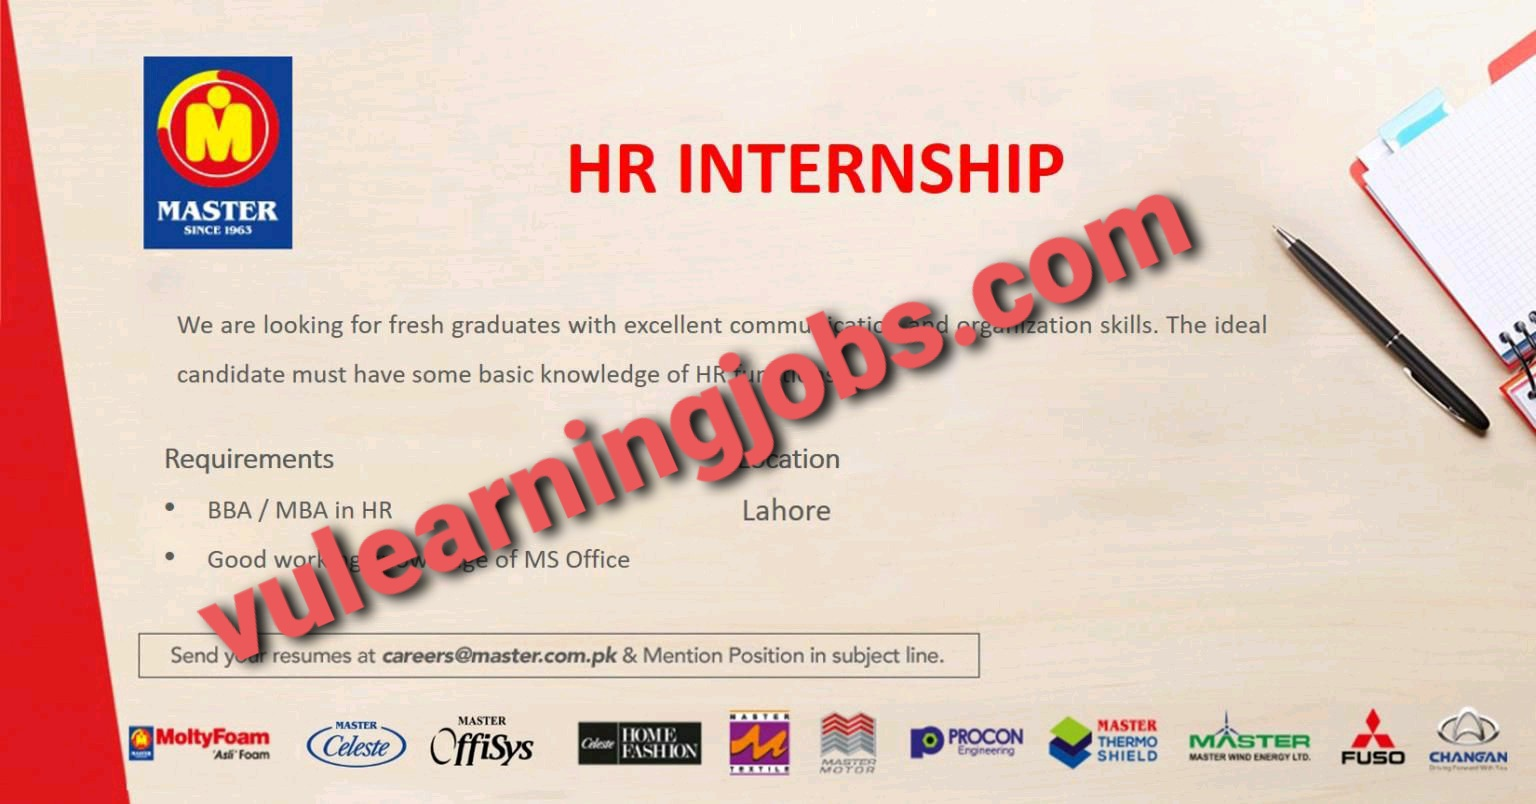 Master Group April Jobs In Pakistan 2021 Latest | Apply Now